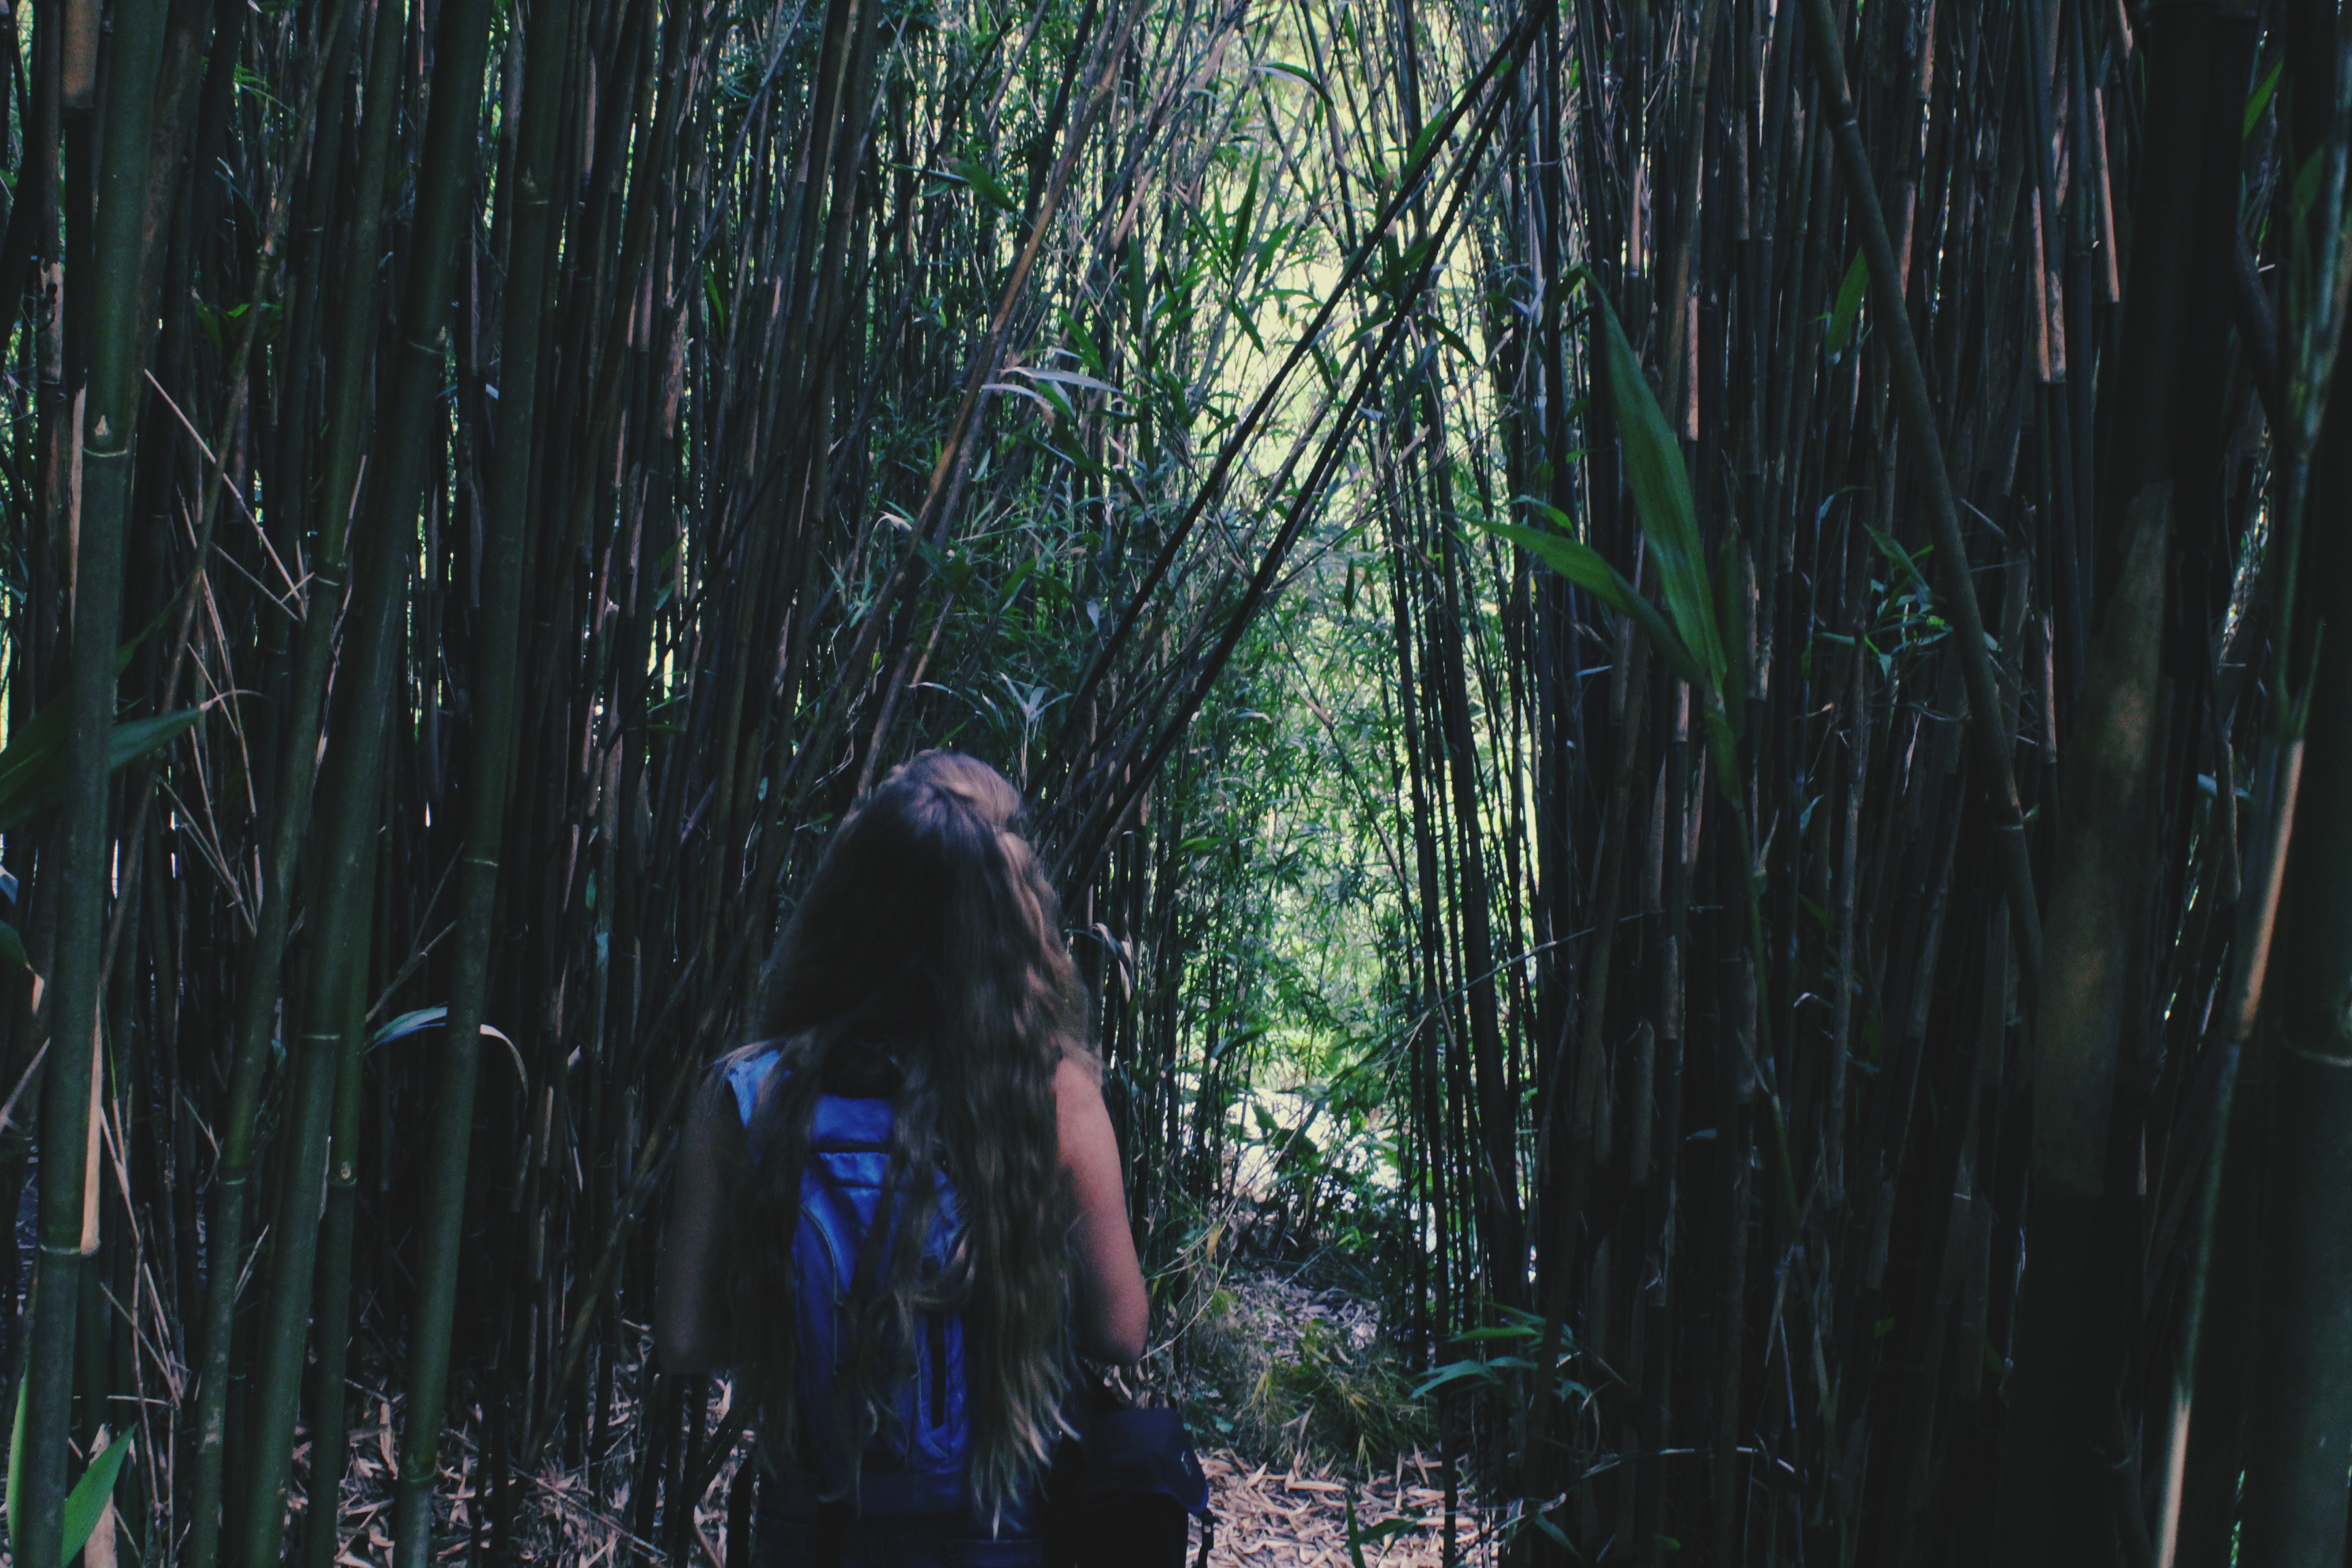 Girl walking through bamboo forest in Trebah Gardens, Cornwall